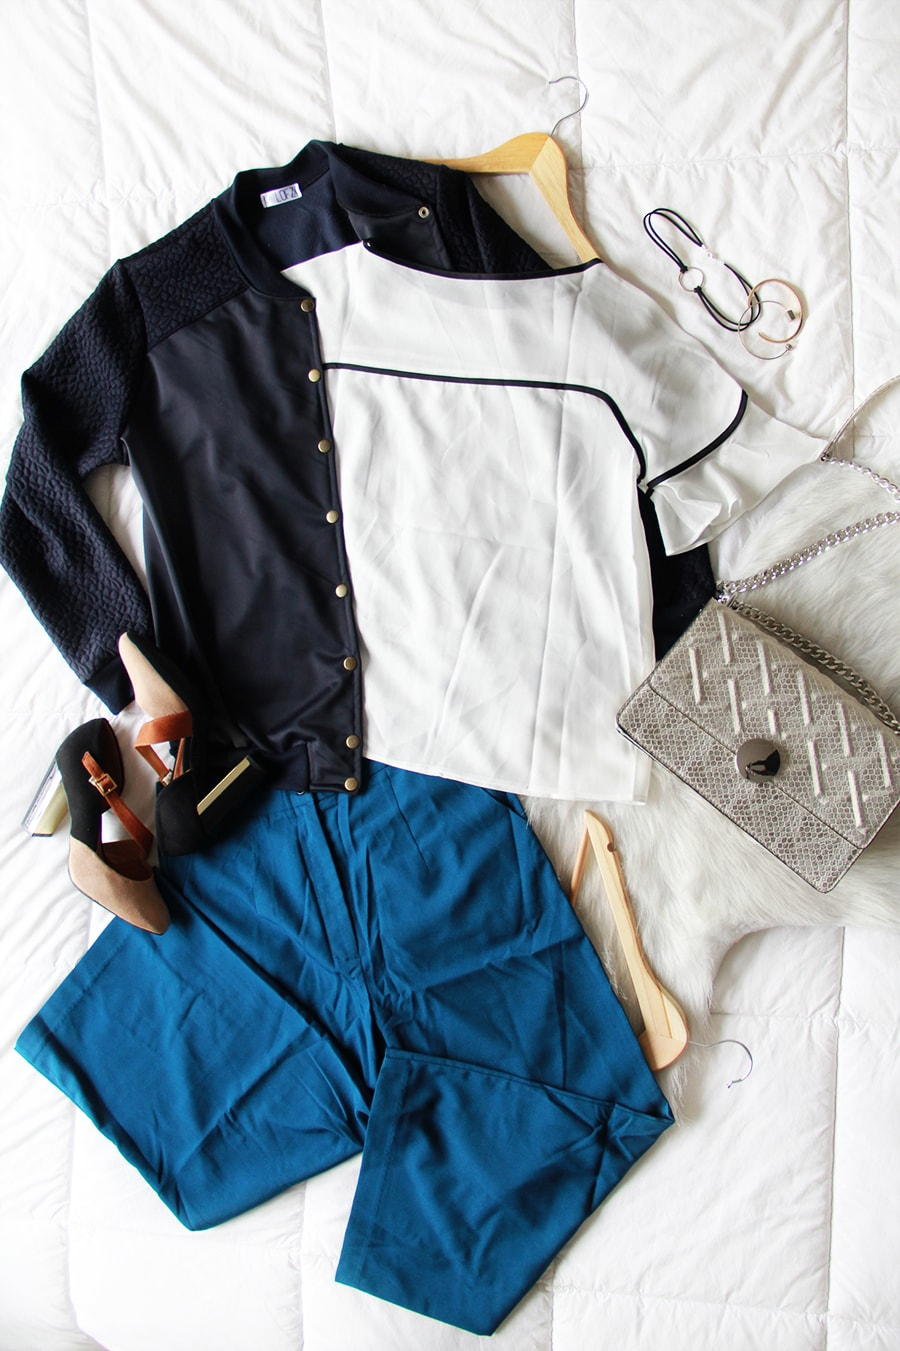 Midseason clothing HAUL - Bomber jacket - Culottes - StyleWe - Reinventing the classics | Golden Strokes